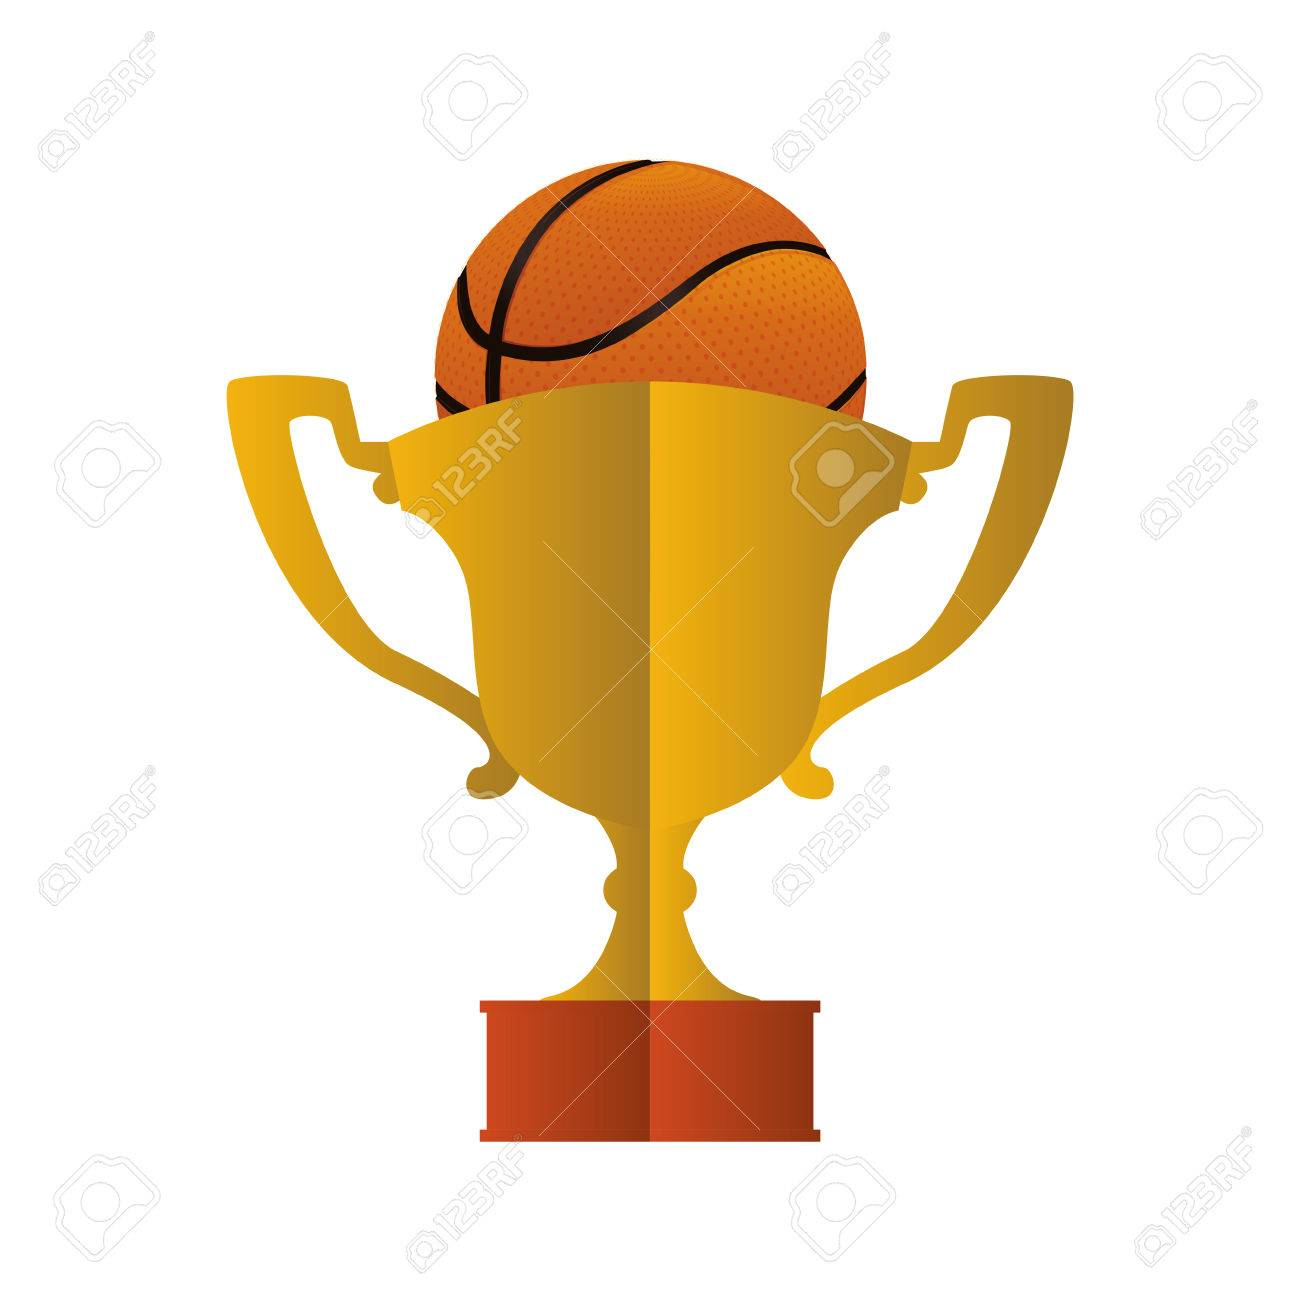 Gold Trophy Cup And Ball Icon Basketball Sport Competition Theme Isolated Design